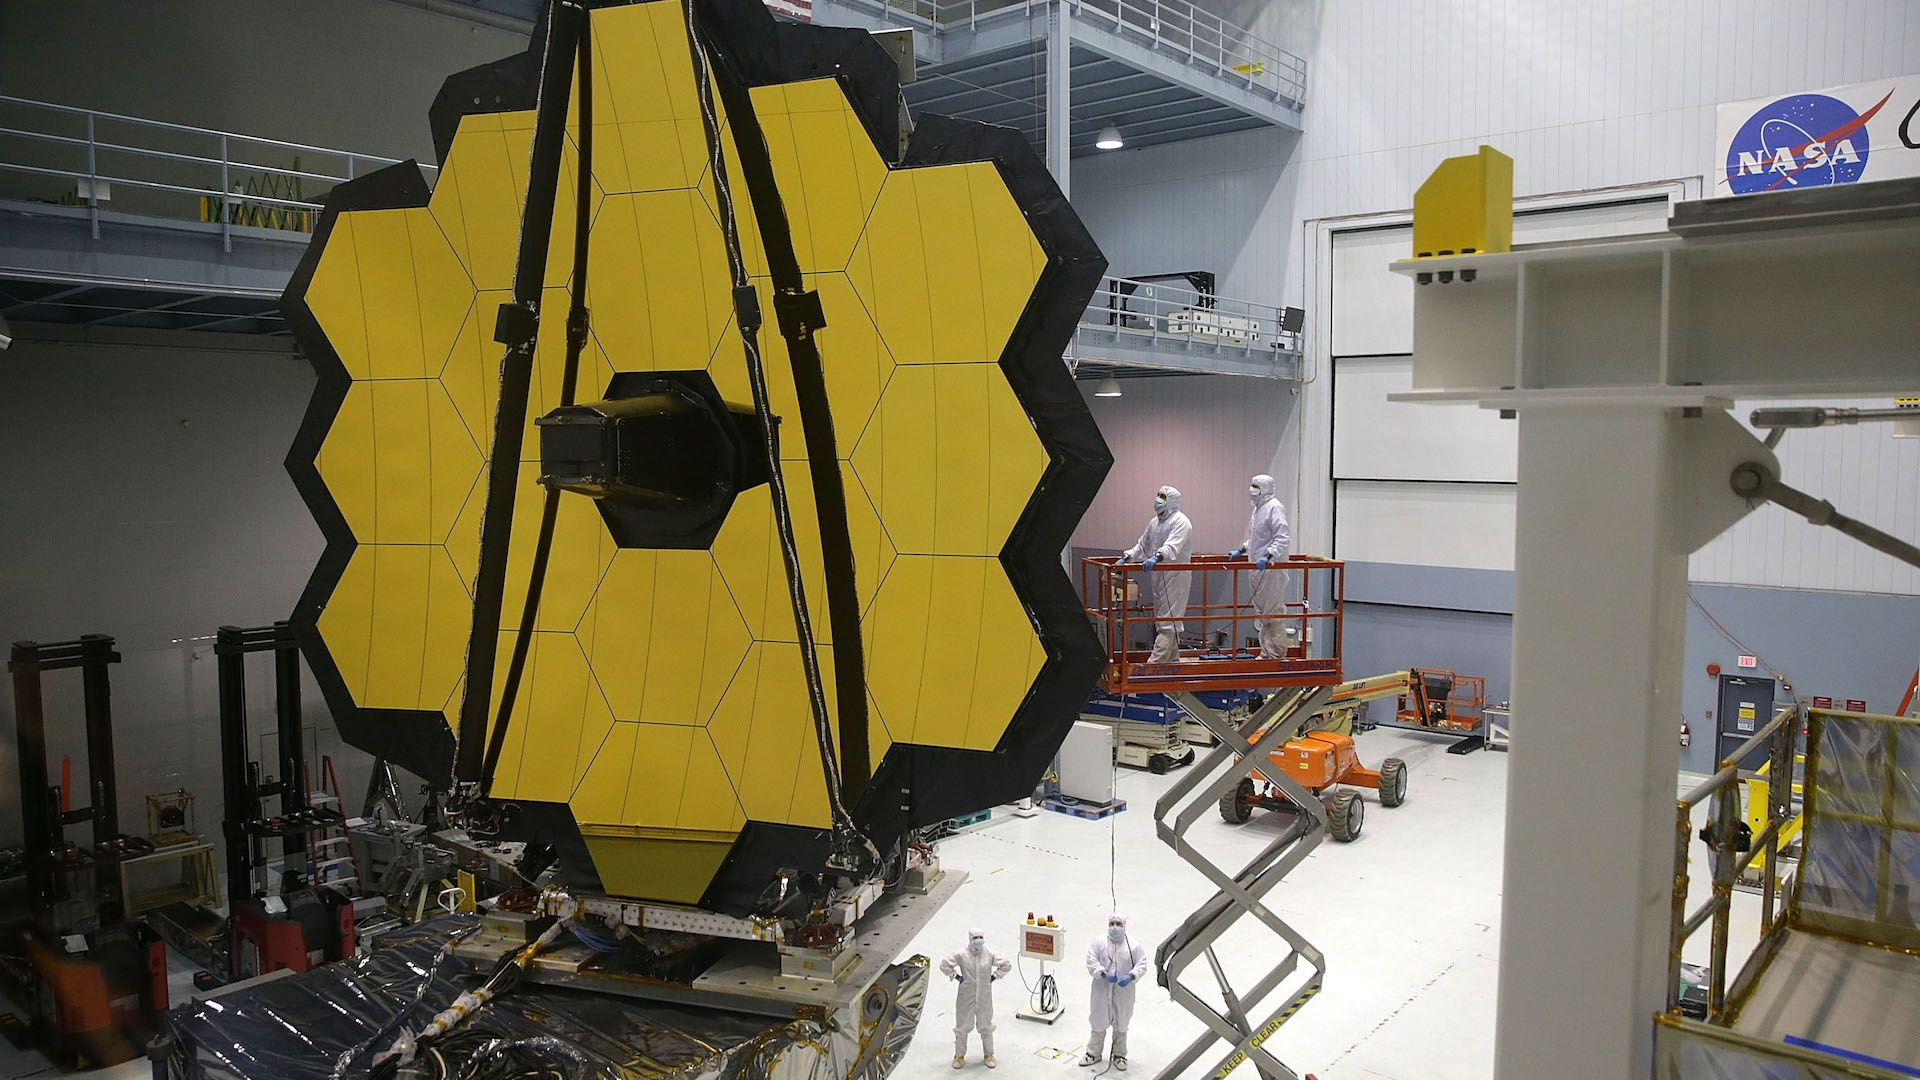 Engineers work on the James Webb Space Telescope at Goddard Space Flight Center in 2016.